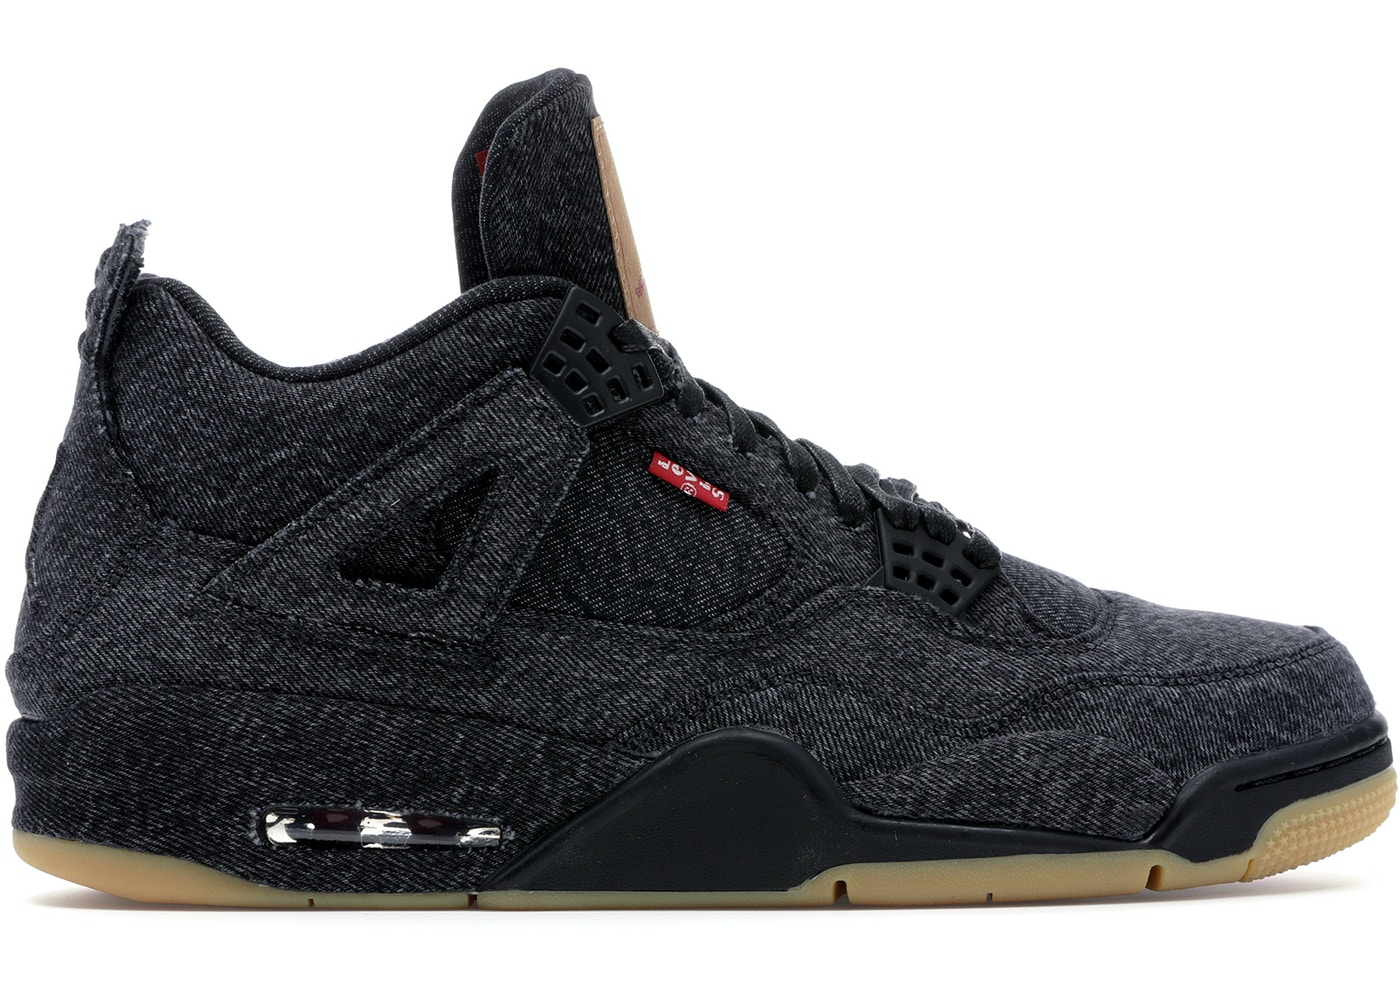 best sneakers ffc31 7573e Jordan 4 Retro Levi's Black (Levi's Tag)